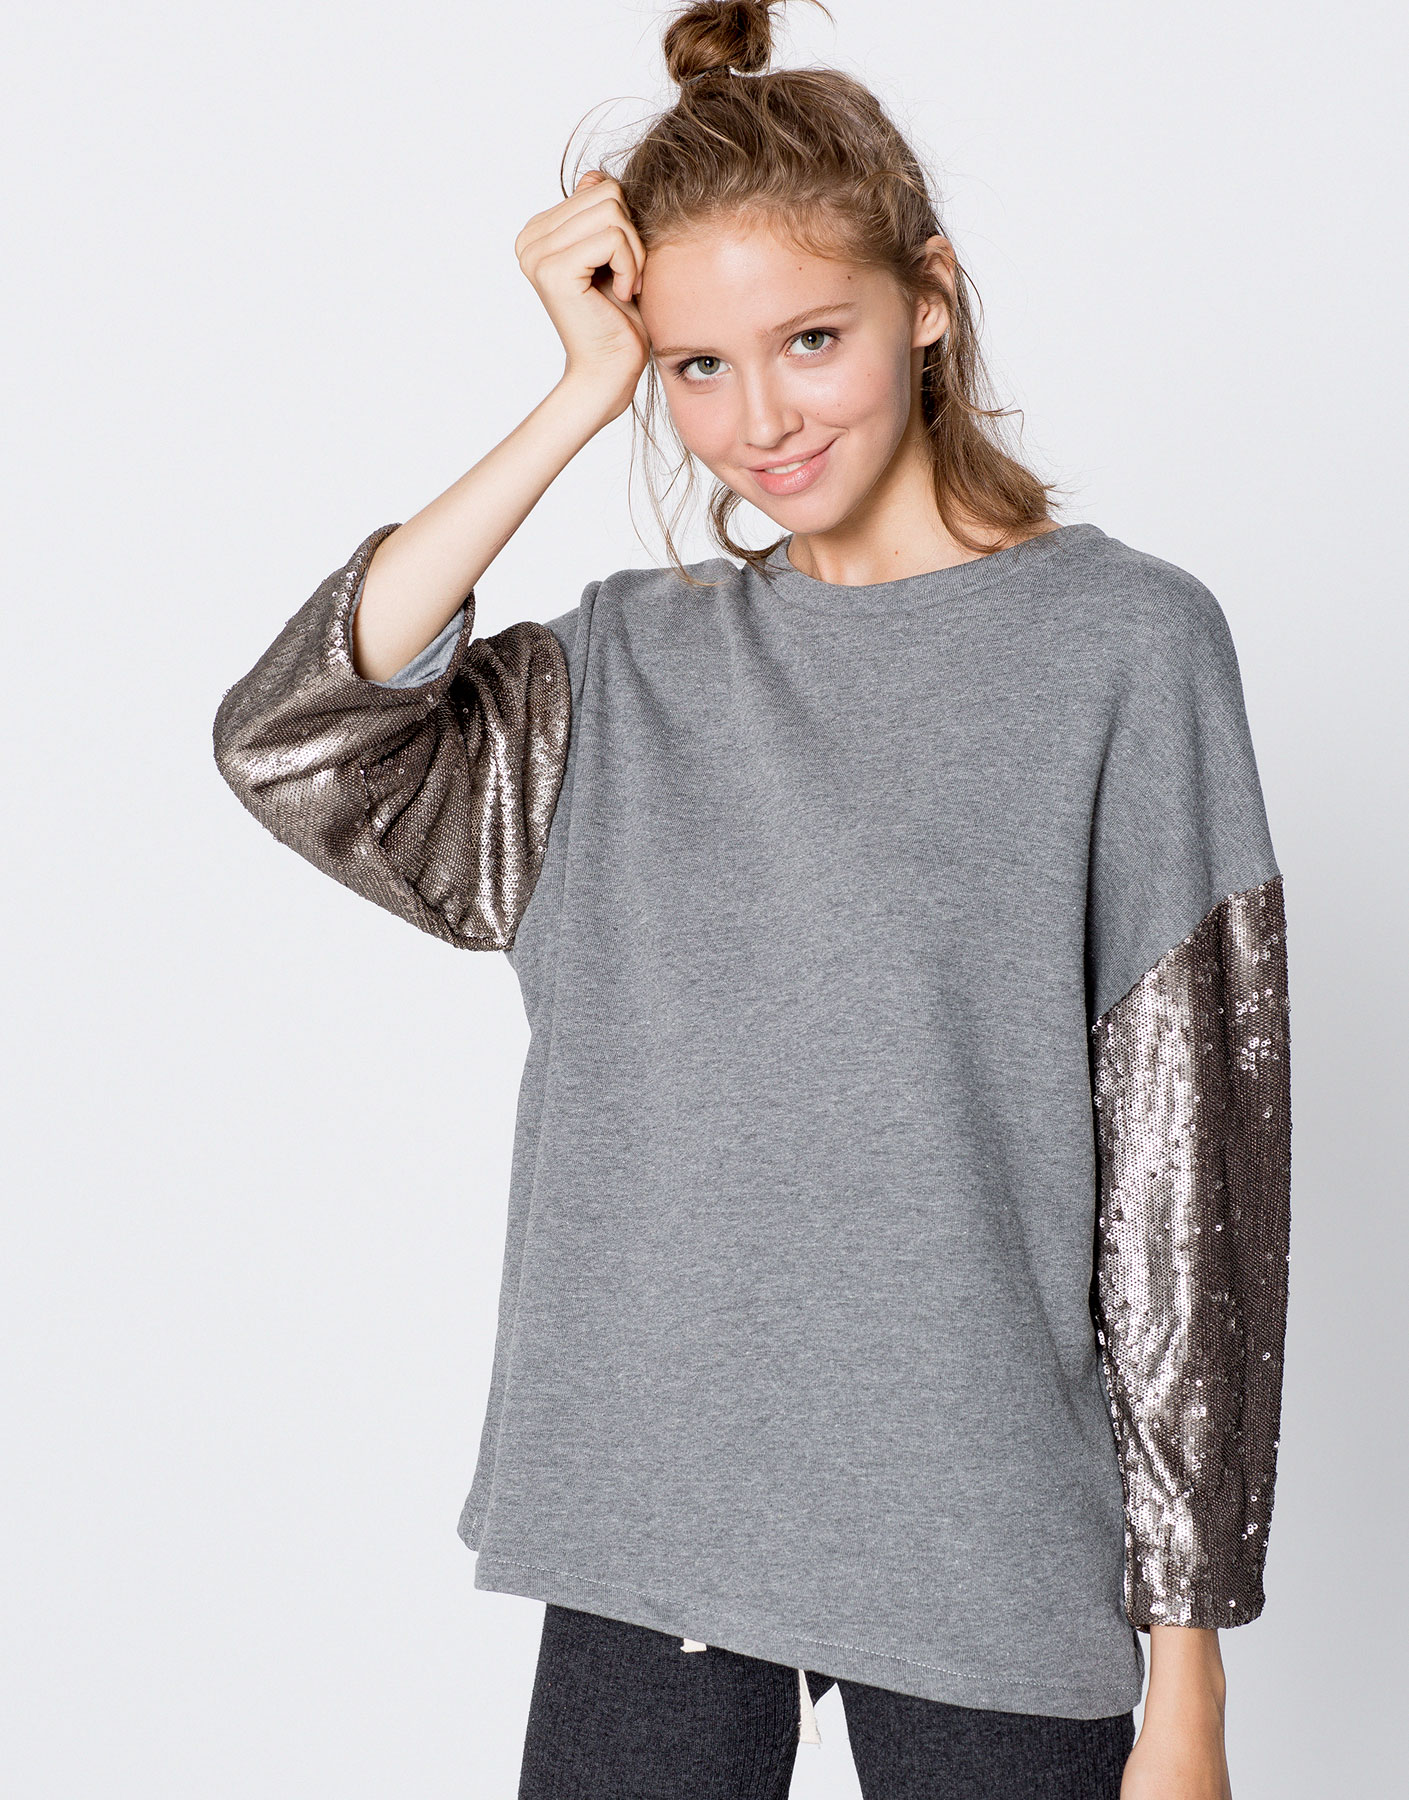 Sweatshirt with sequin sleeves